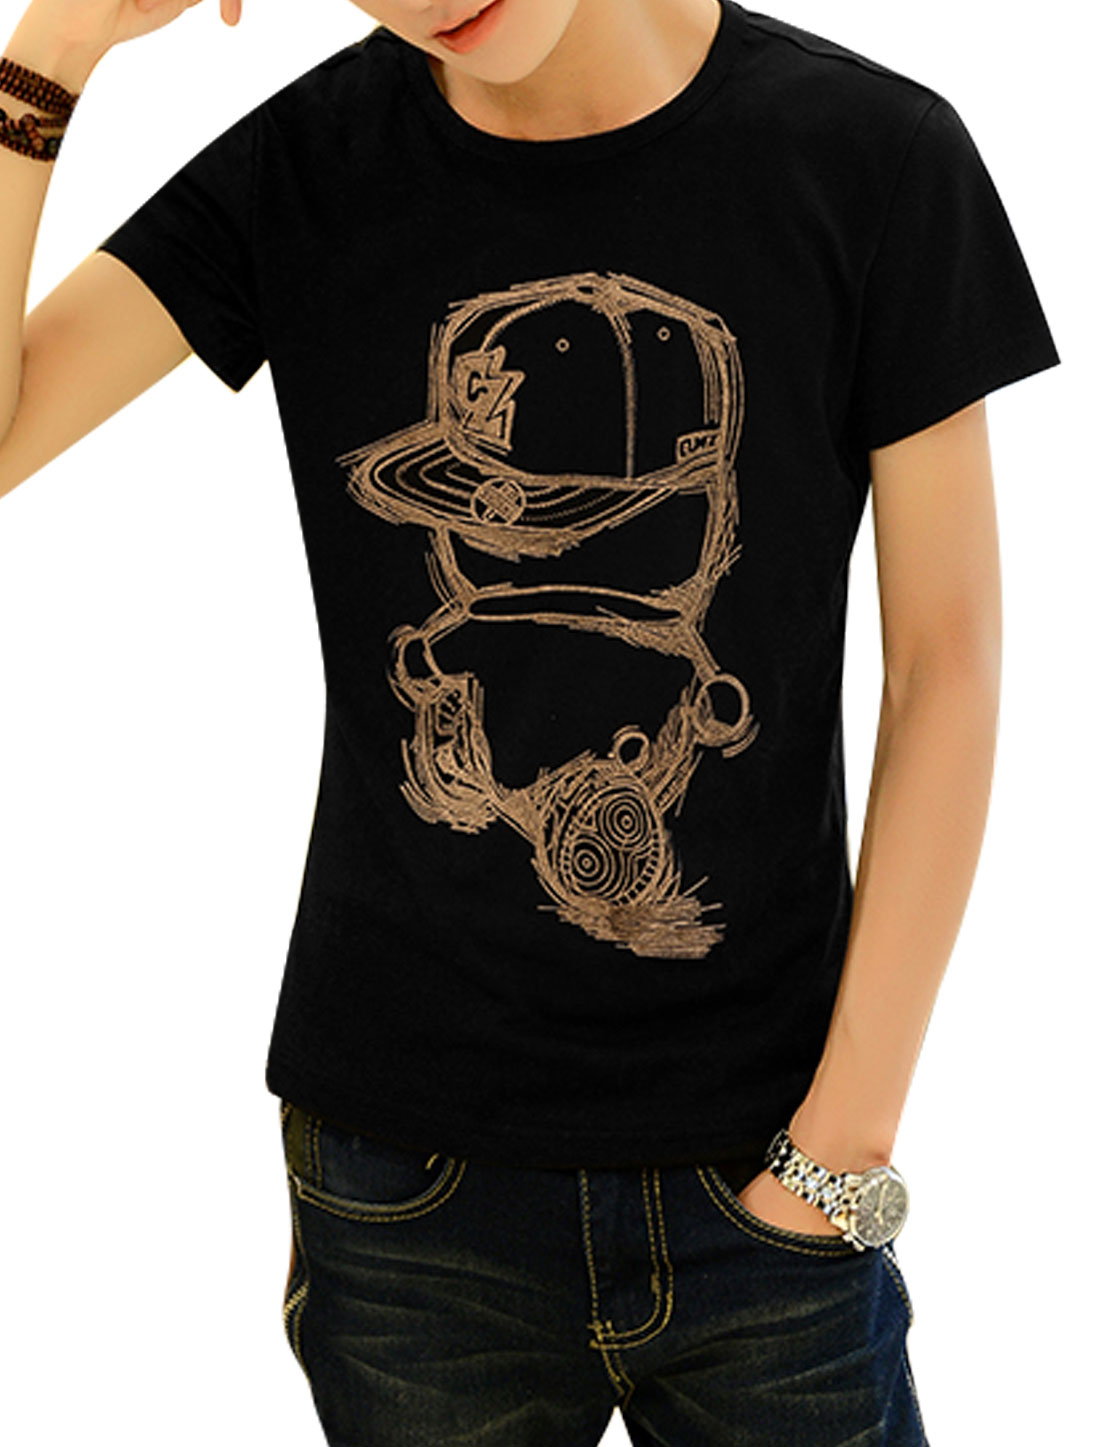 Short Sleeve Cartoon Prints T-Shirt for Men Black S